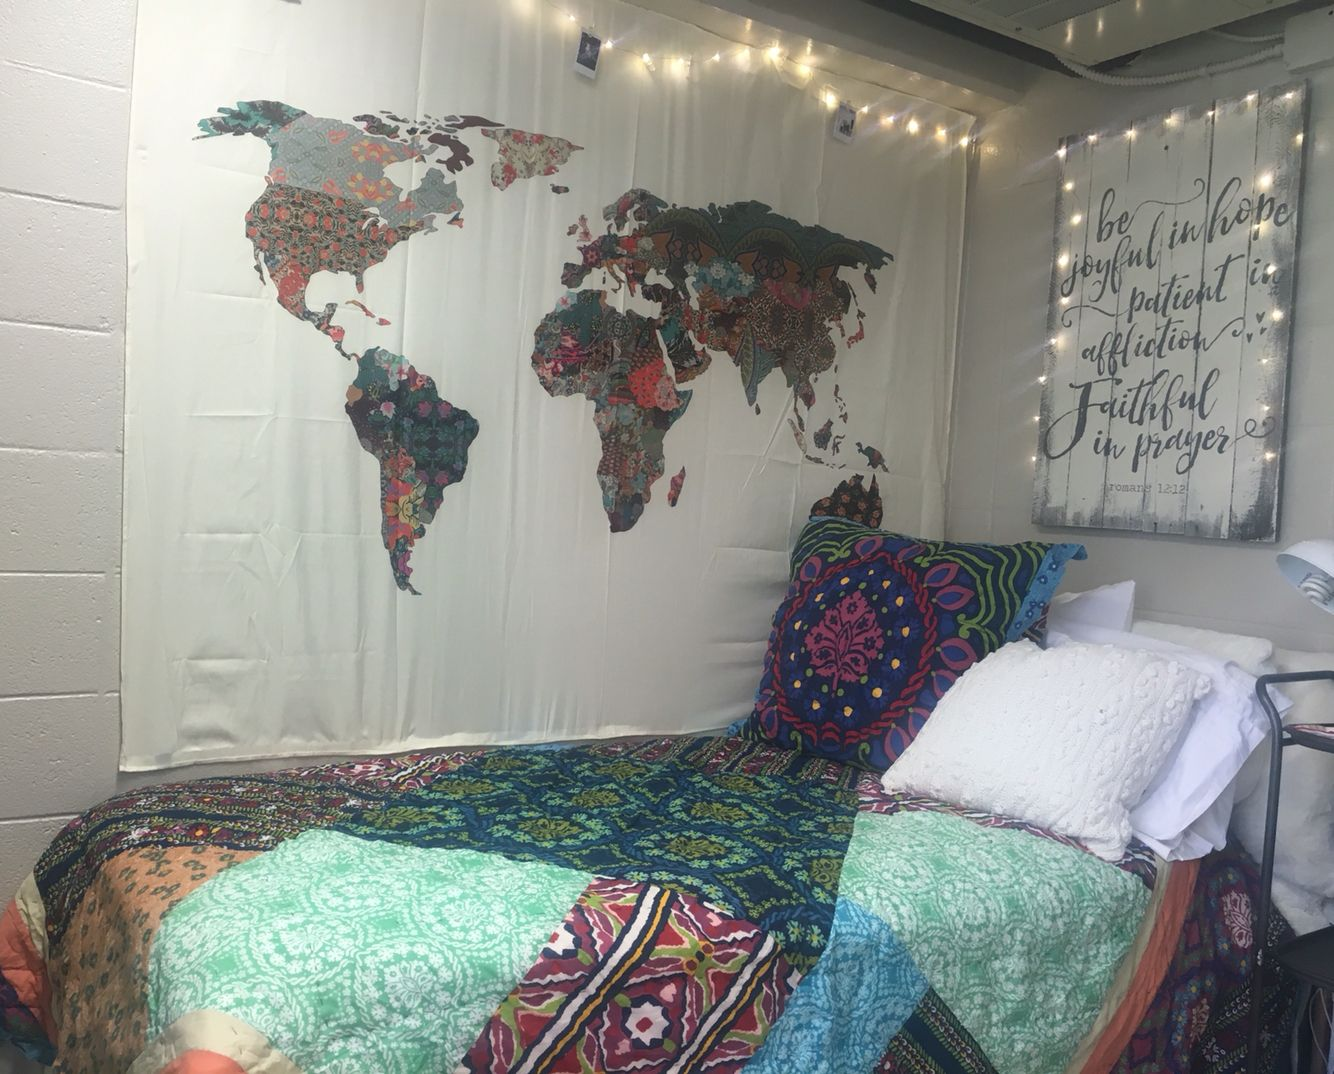 bohemian style dorm room at samford university dorm bedding from and world map tapestry